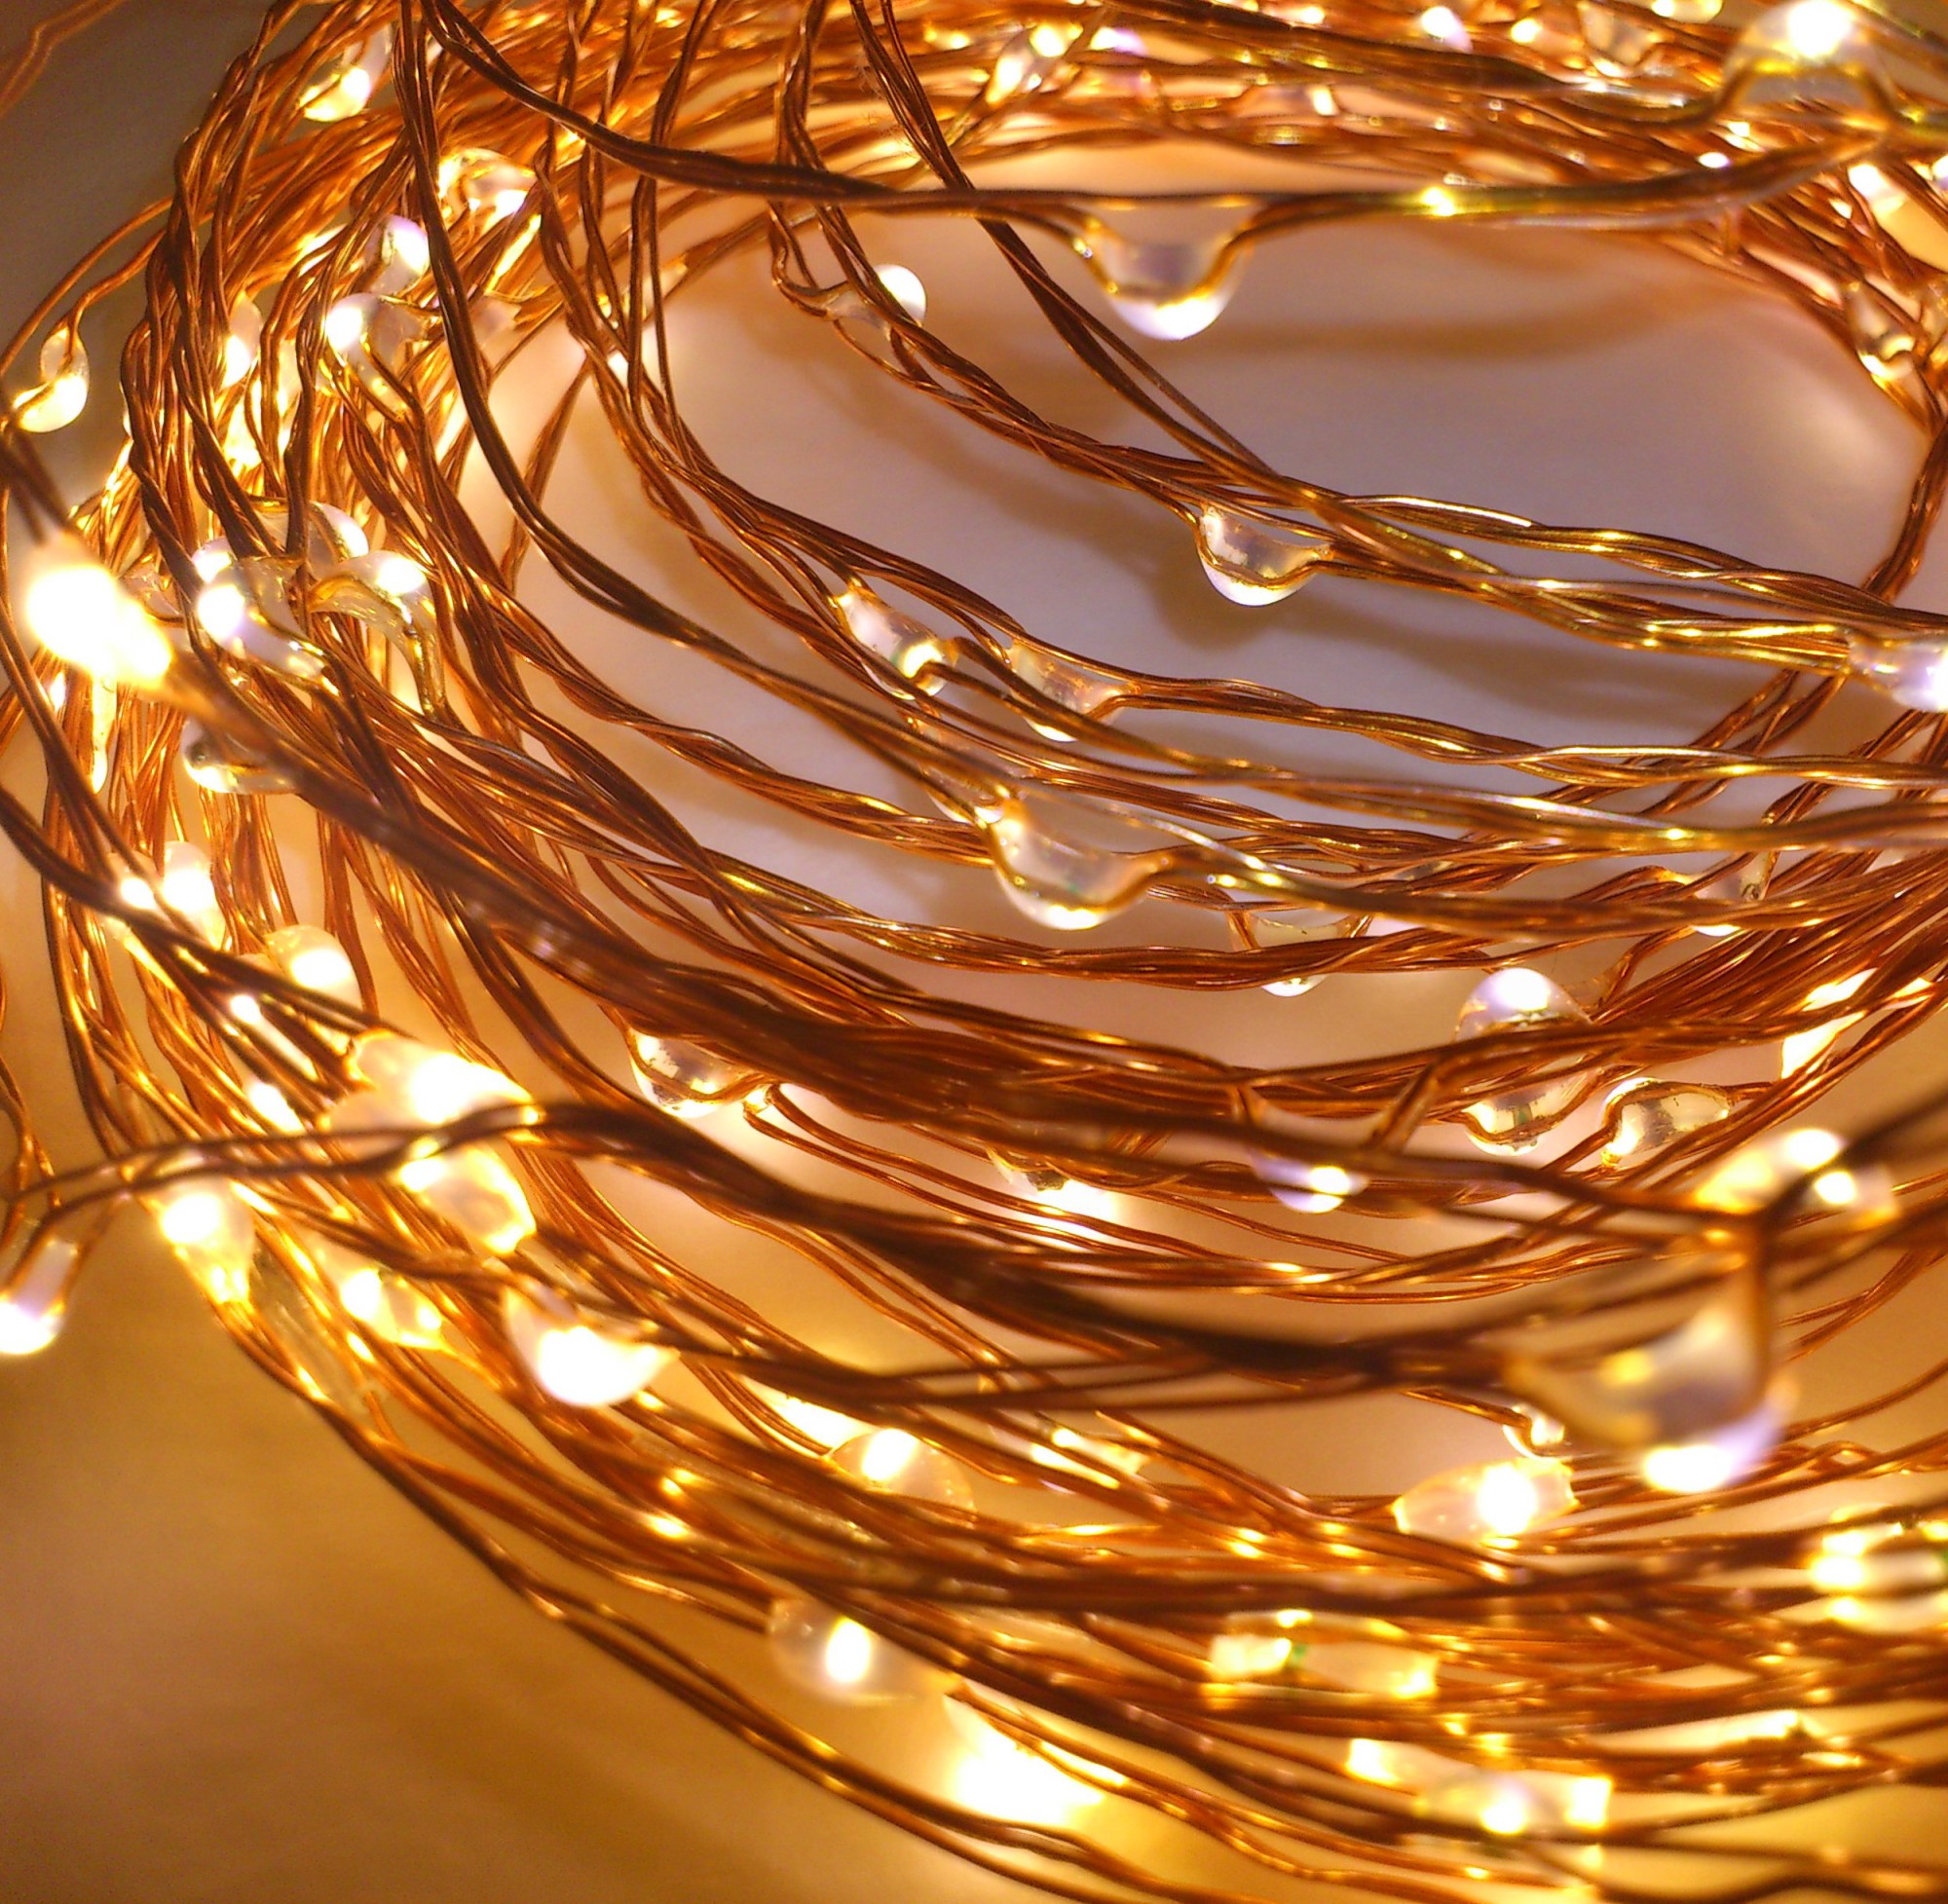 hight resolution of copper wire string lights qualizzi starry and string lights wiring dimmable led fixture copper led fixture wiring